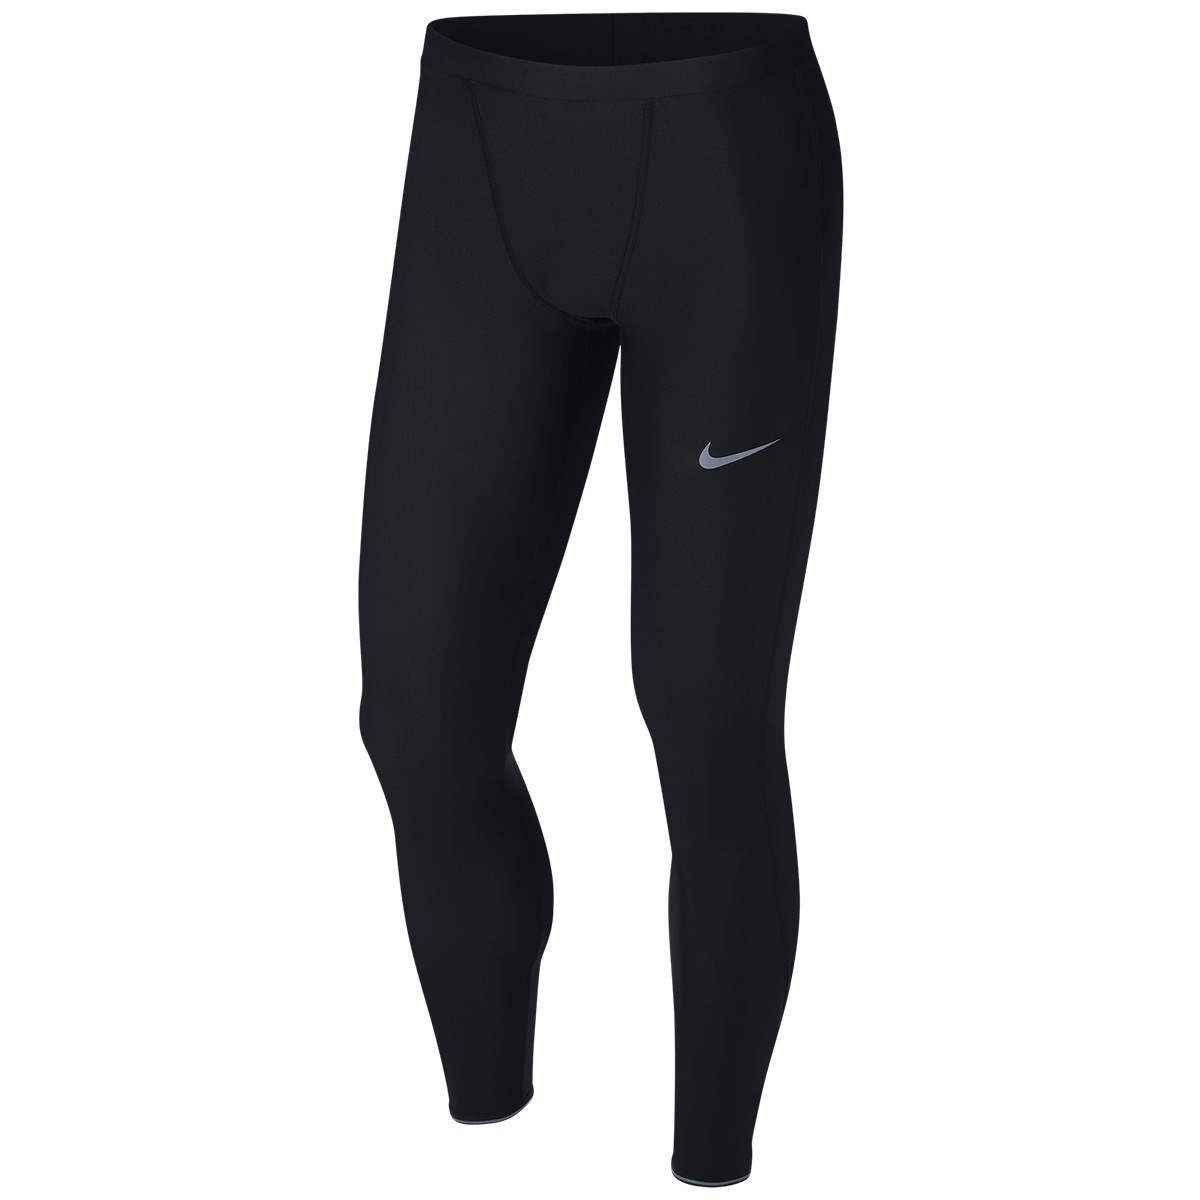 COLLANT NIKE RUNNING